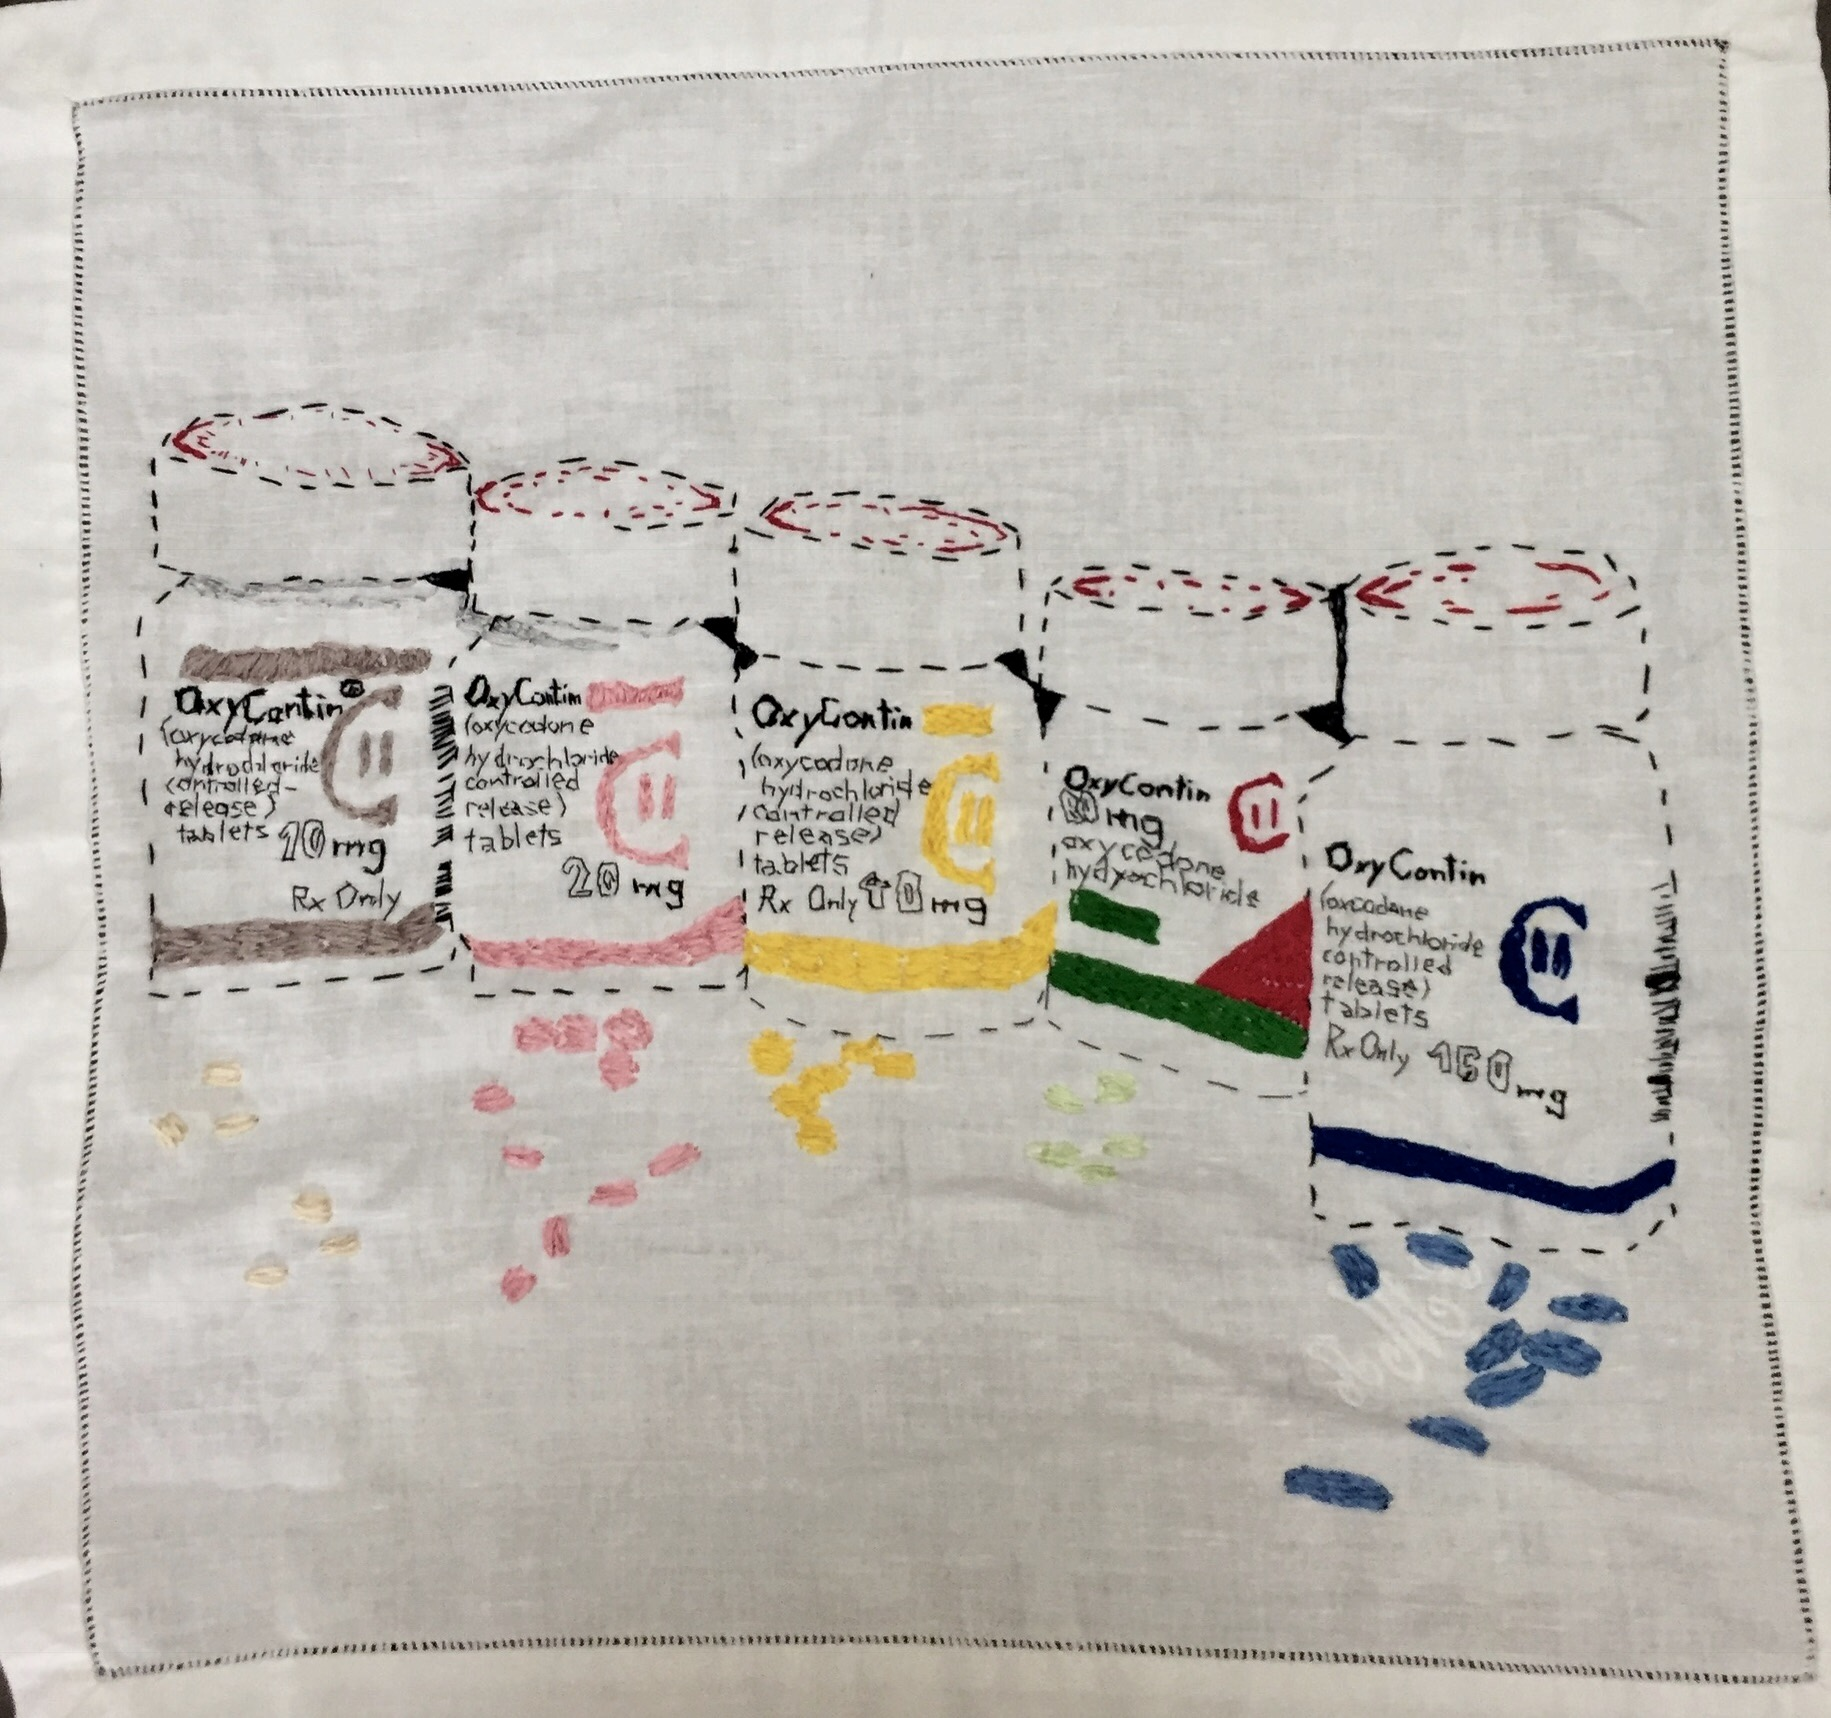 PHARMA SERIES: OXYCONTIN embroidery on a vintage linen napkin (FRAMED) -2017 $1500